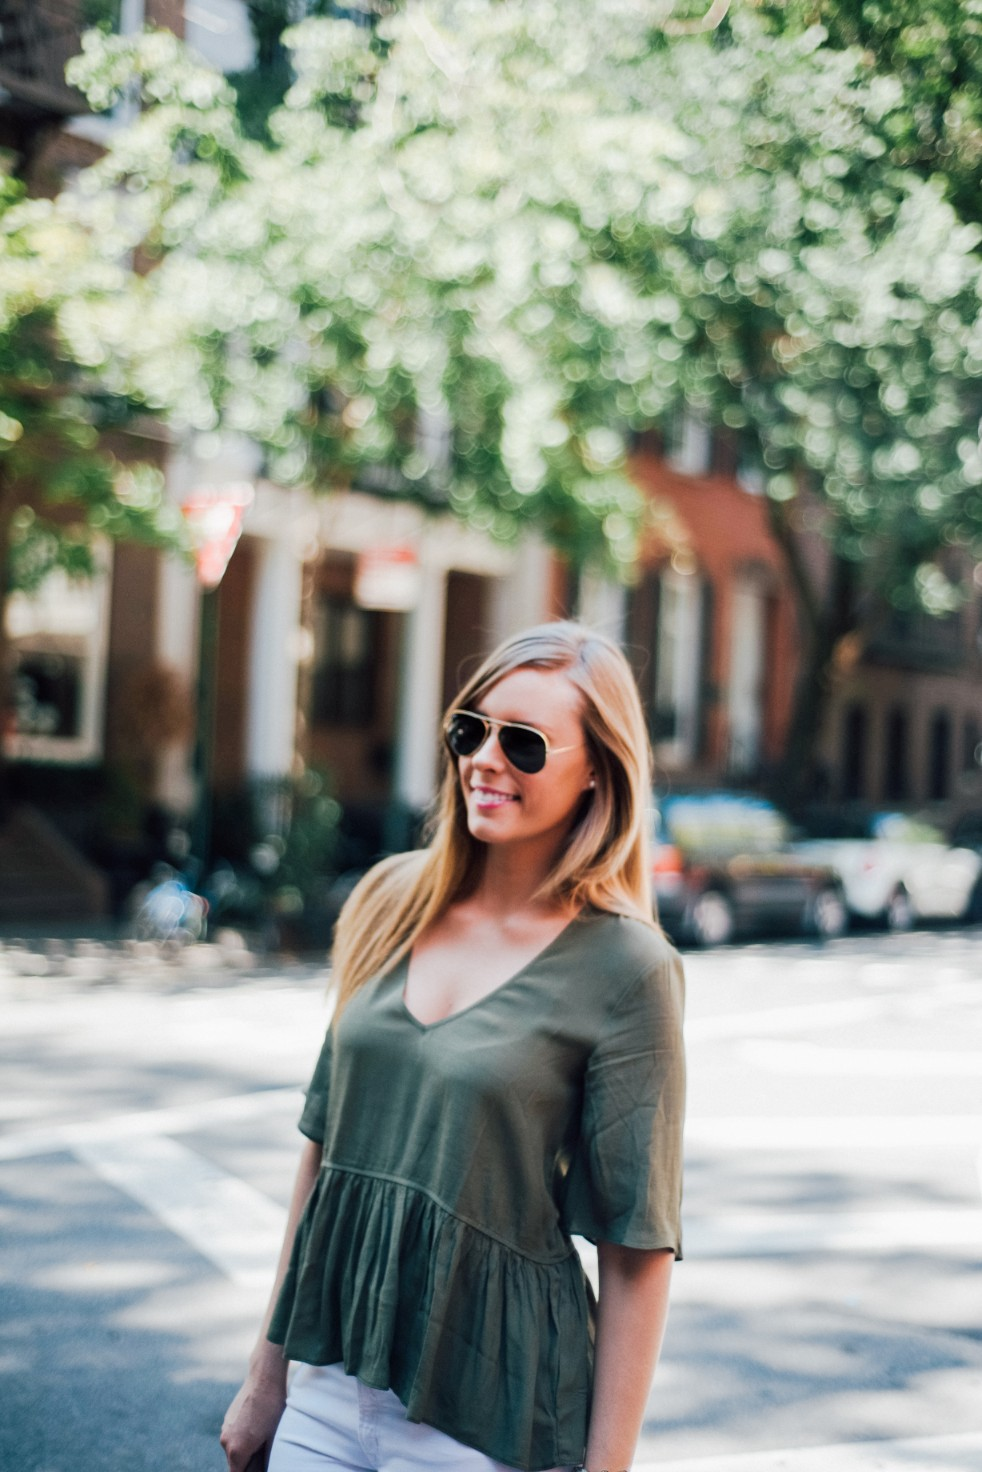 white jeans and peplum top west village fashion new york fashion blogger lauren slade style elixir blog spring outfit ideas 13 - Style Sessions - White Jeans and Peplum Top in the West Village featured by popular US style blogger, Style Elixir